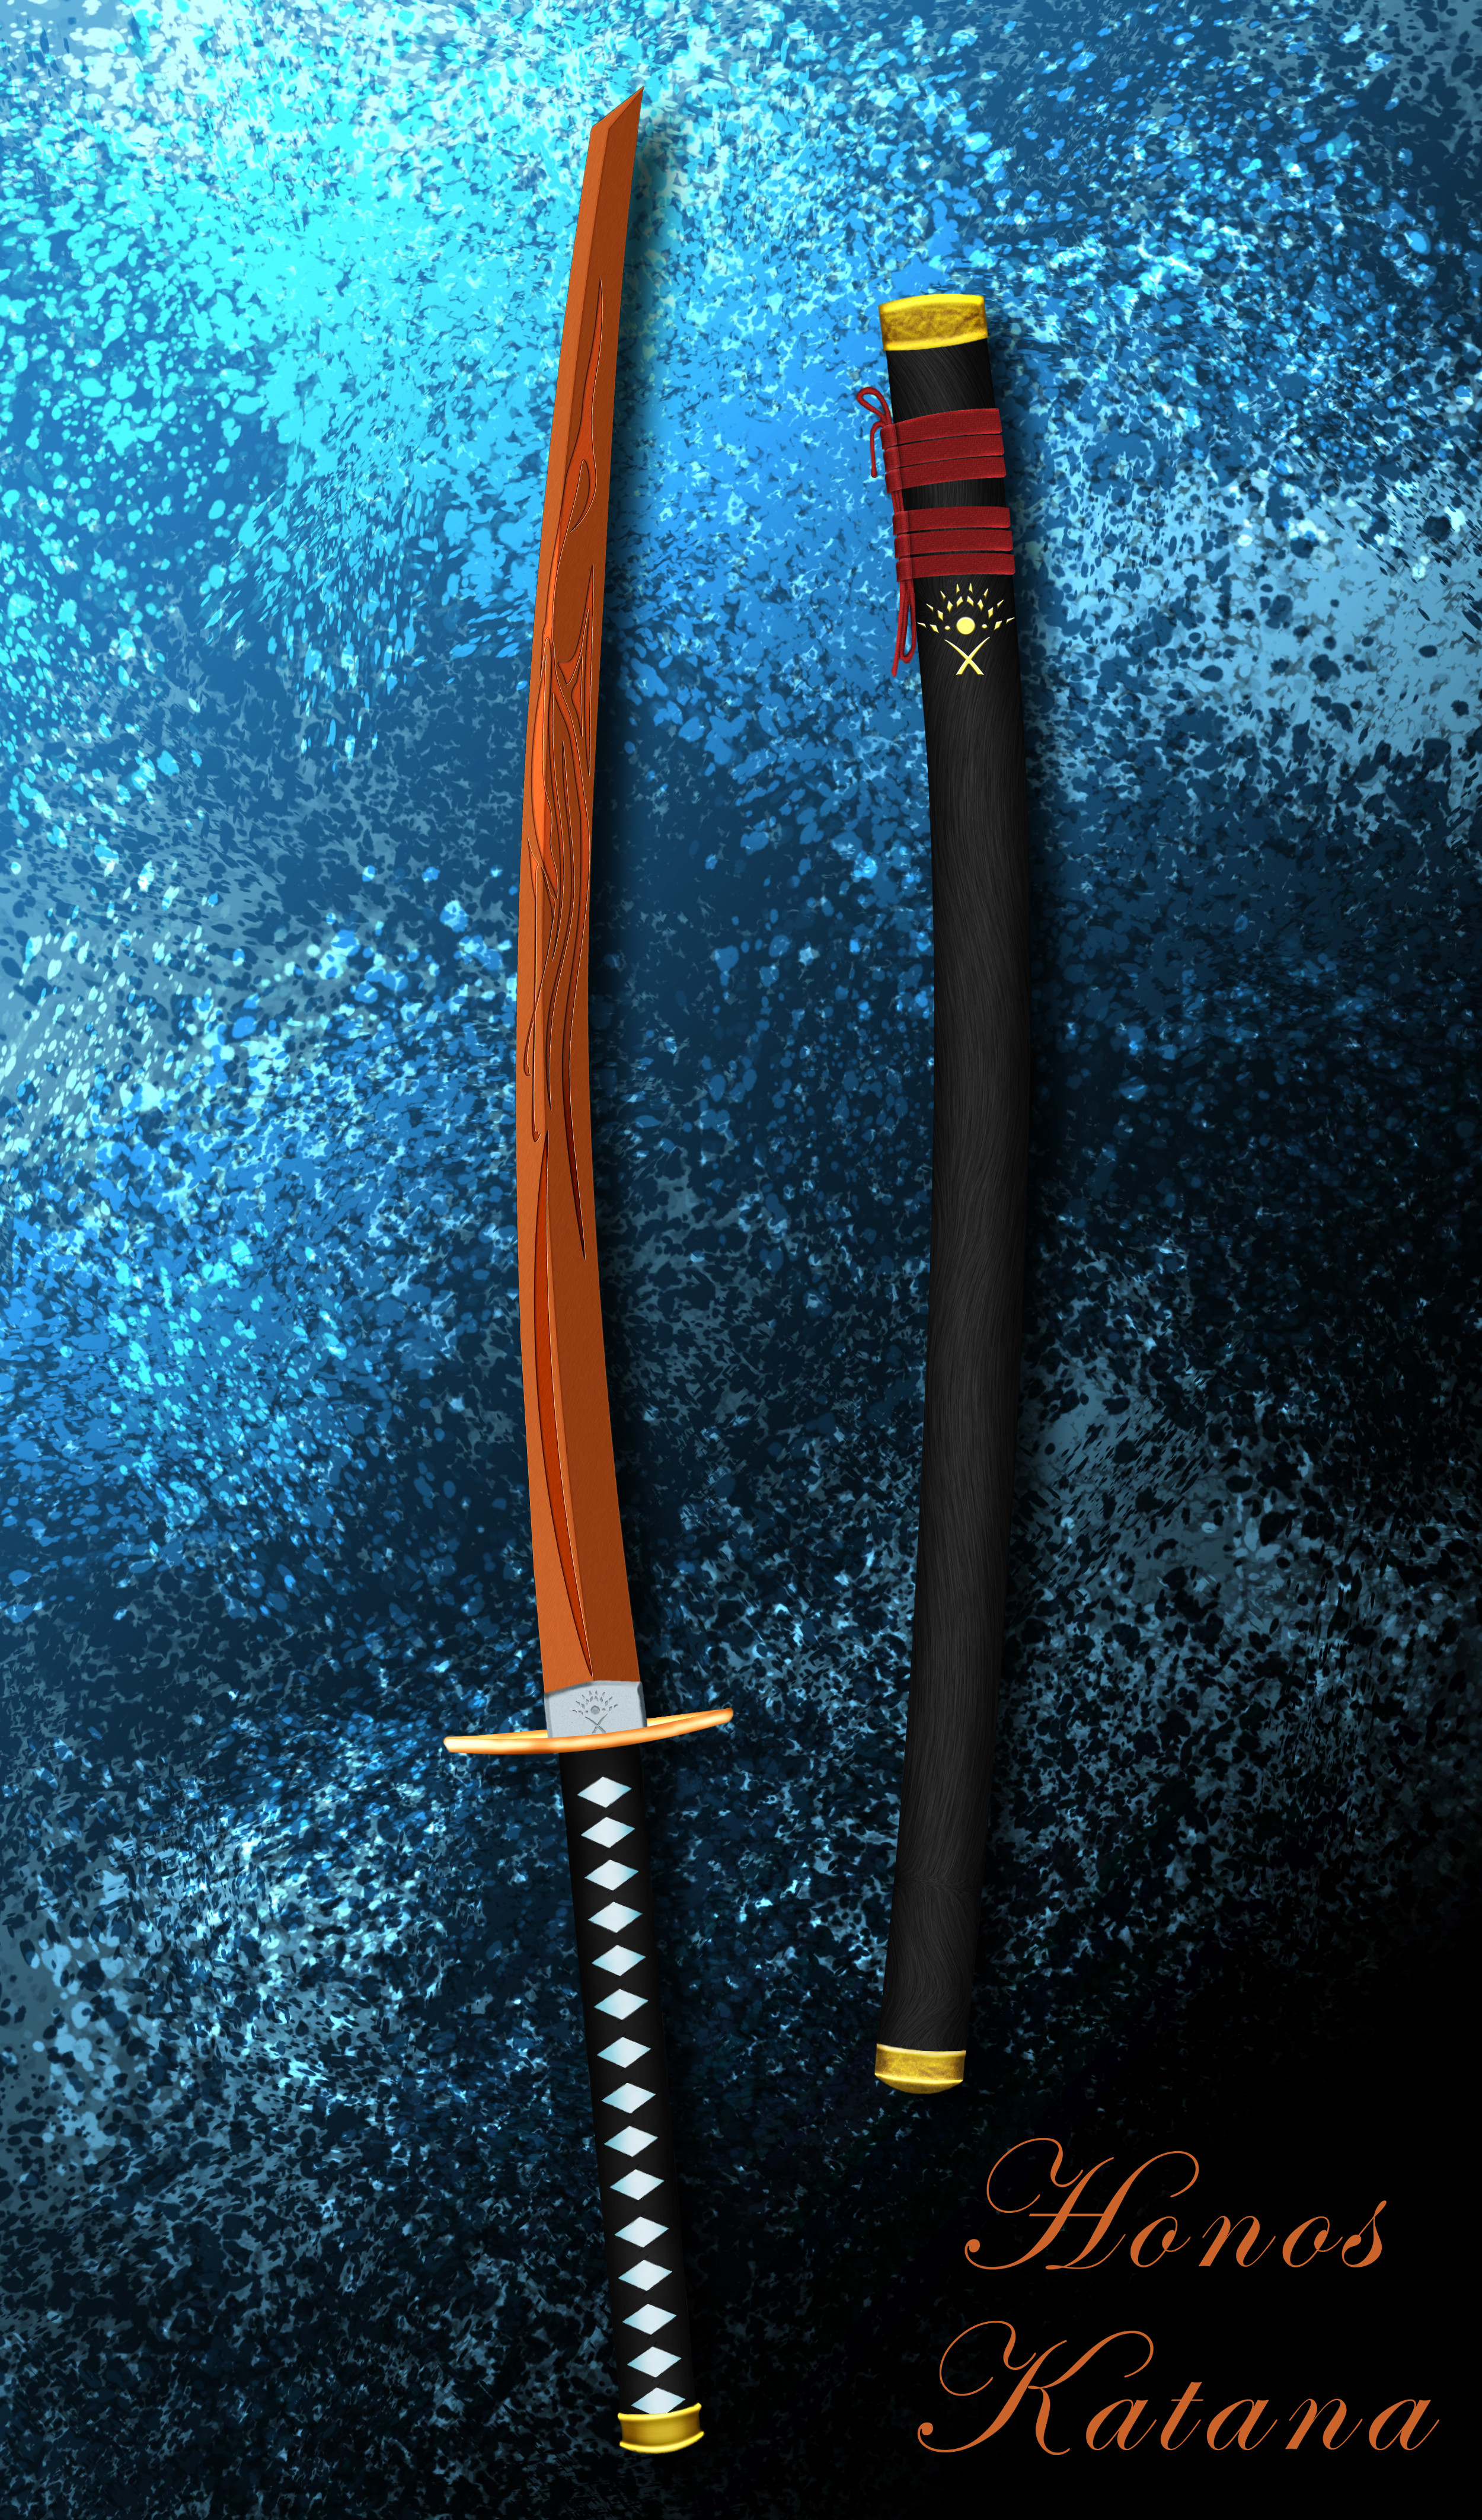 Completed Katana on Contrast Abstract BG